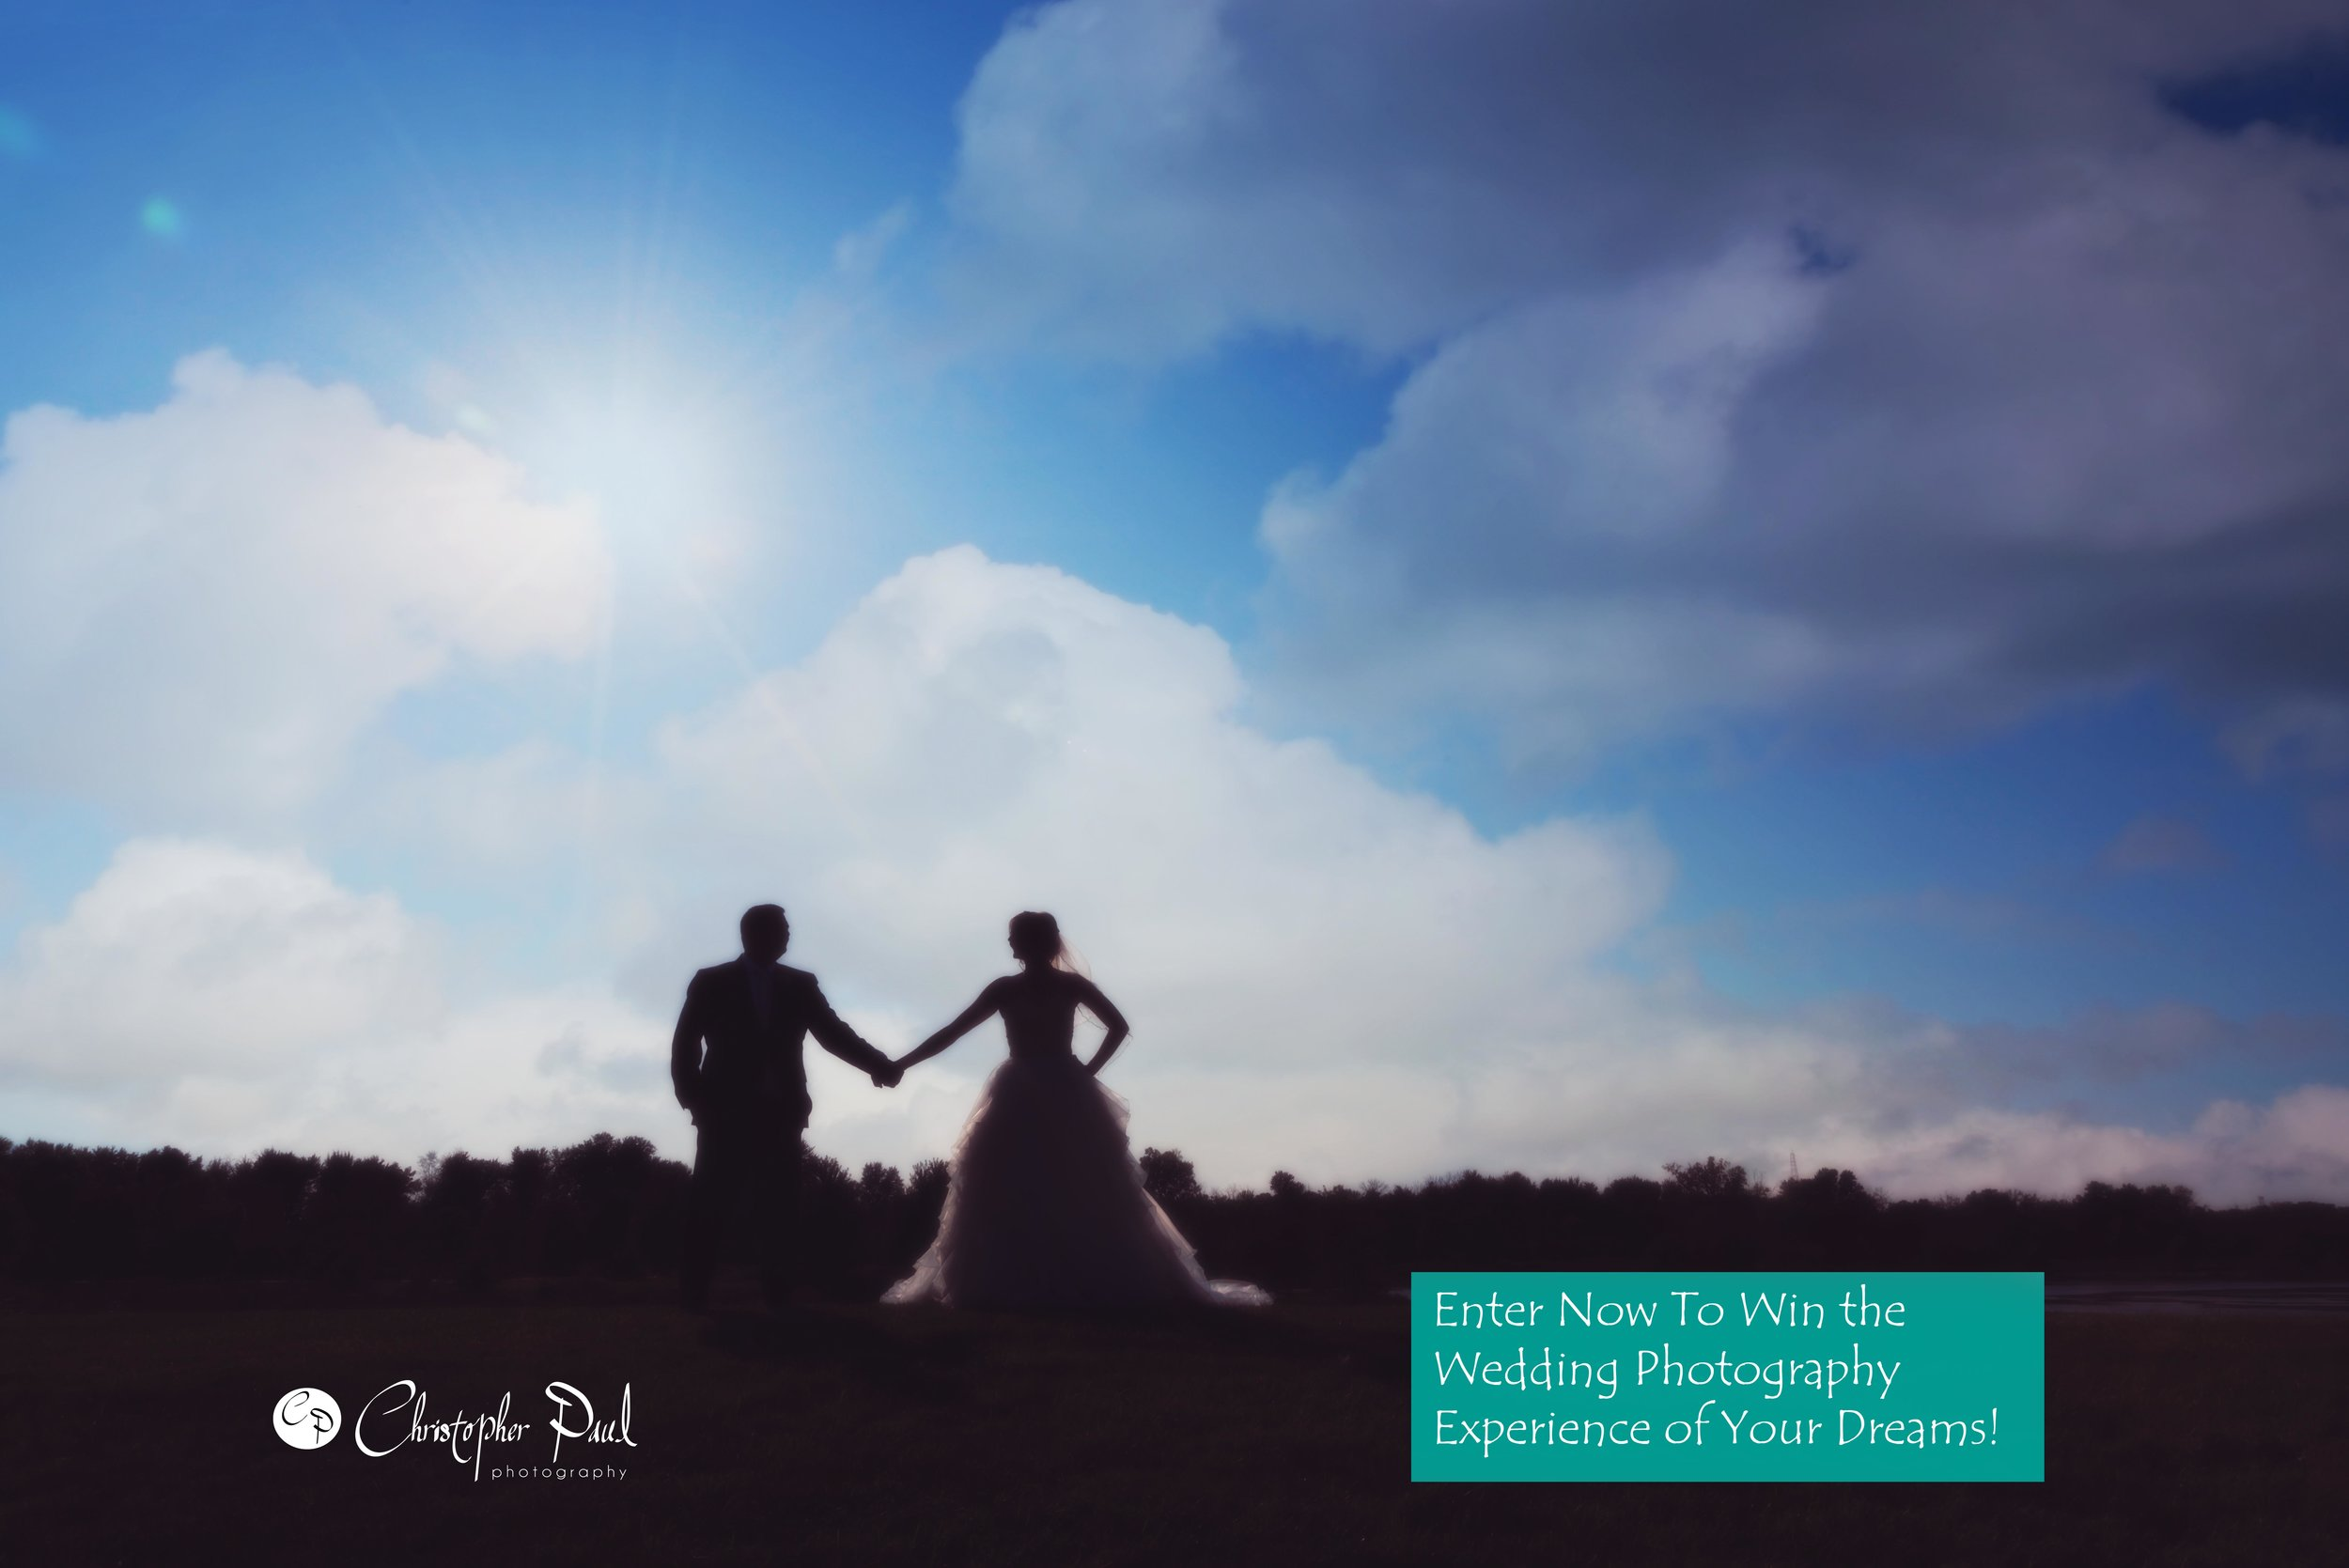 CPP Wedding photography giveaway 2